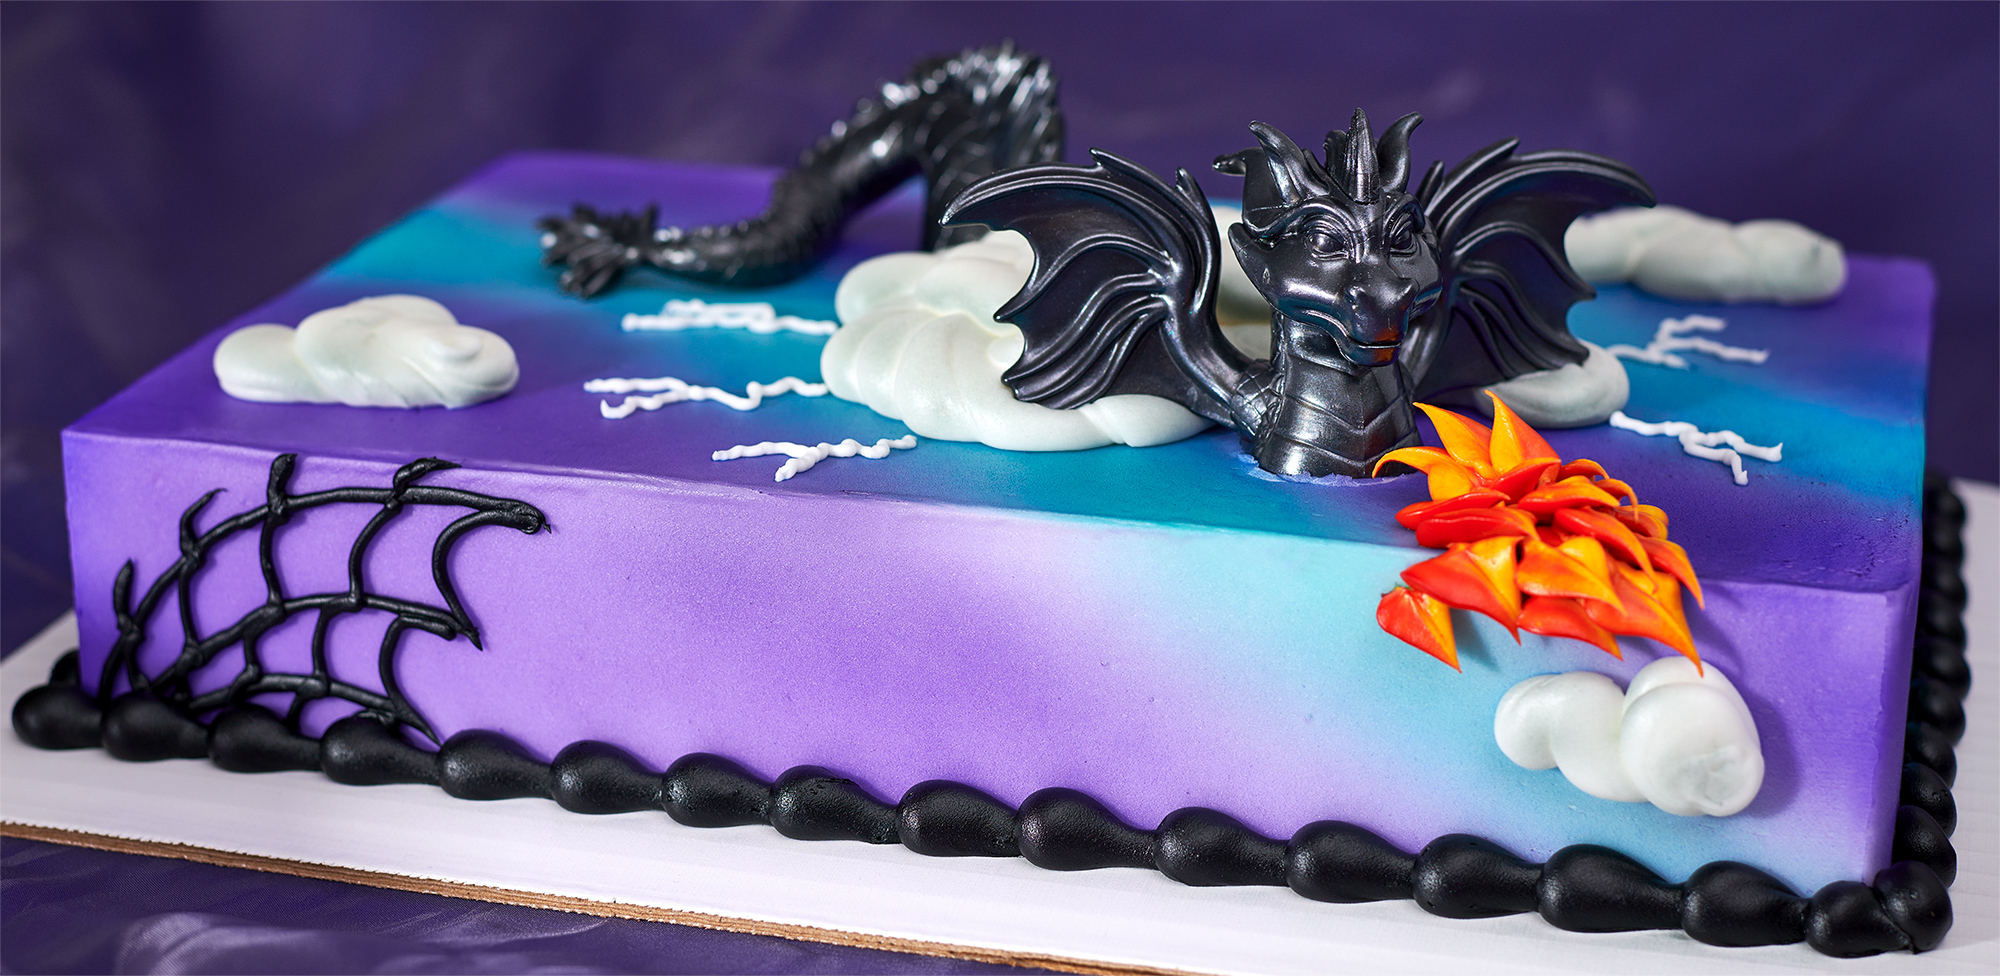 Blue, Purple, Fire-Breathing Dragon Cake